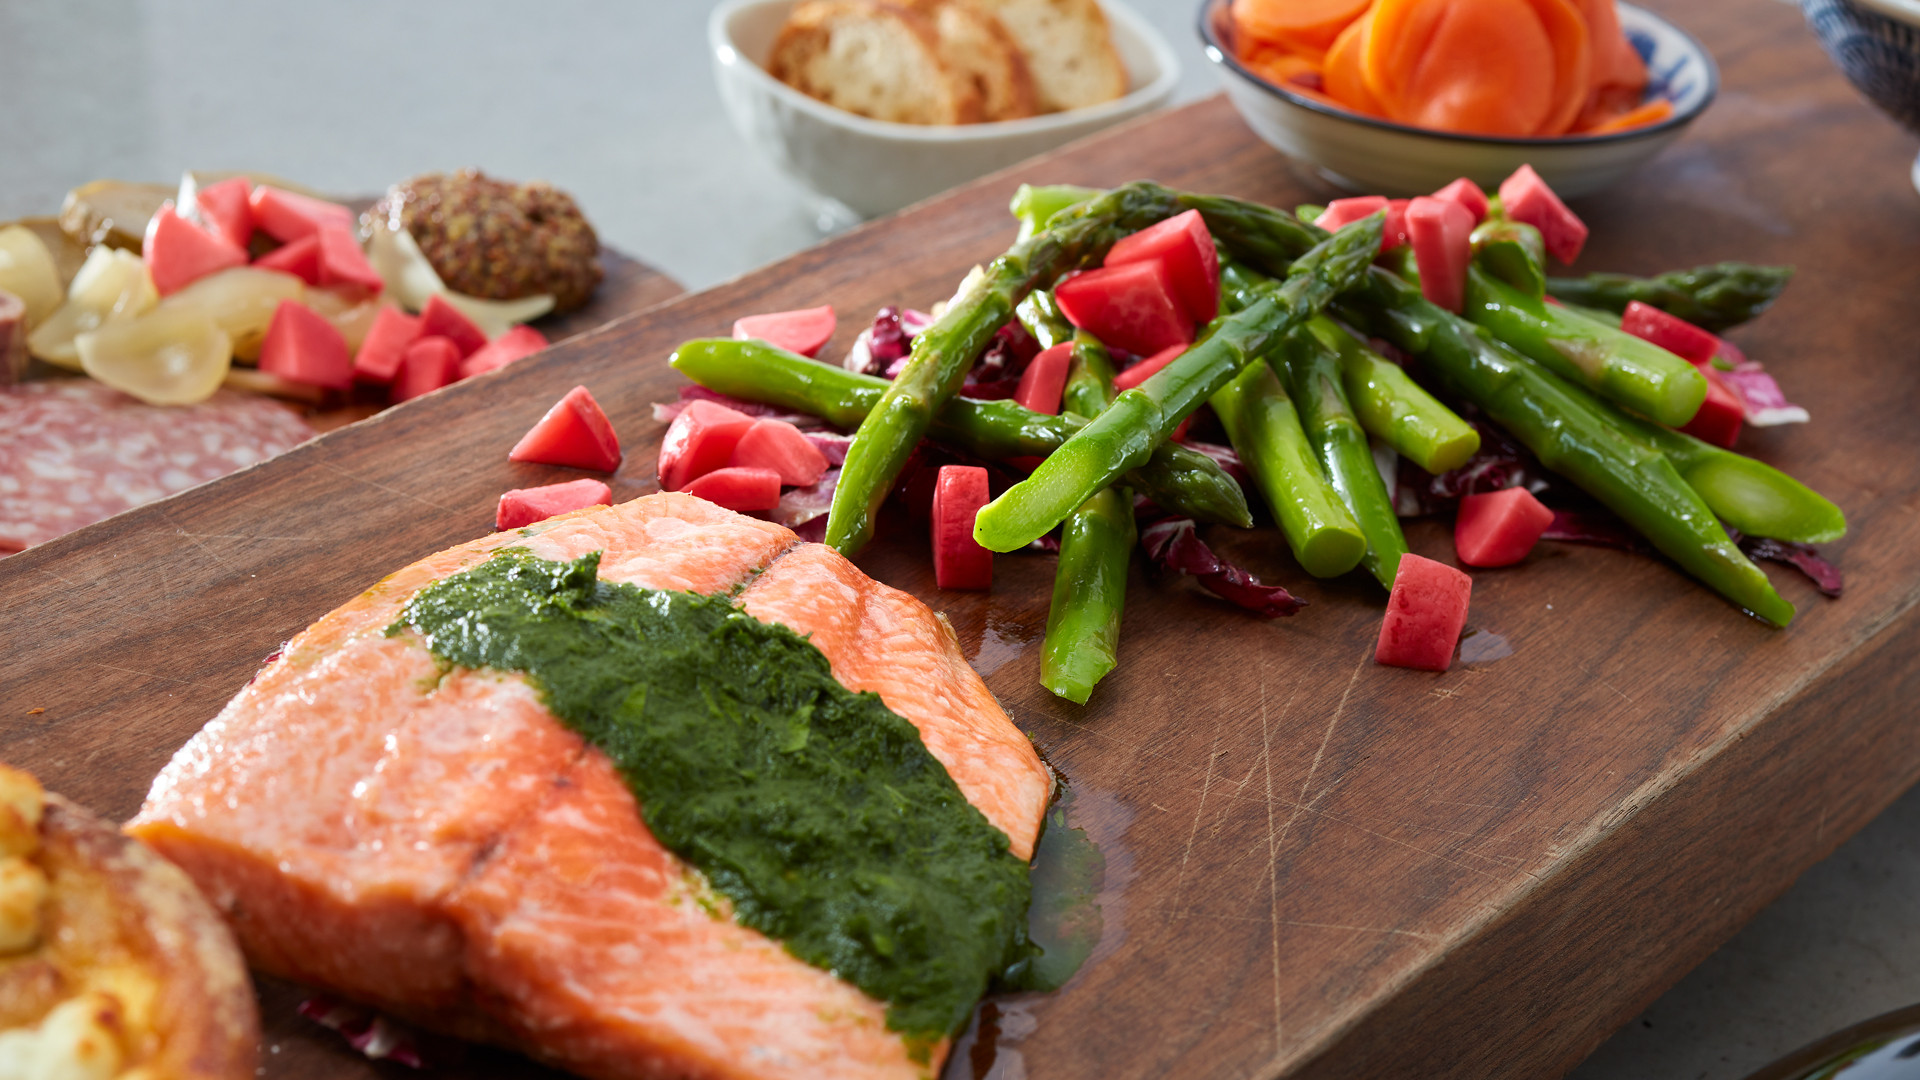 Mother's Day 2021: Salmon and other treats from the AGO's Mother's Day Luncheon